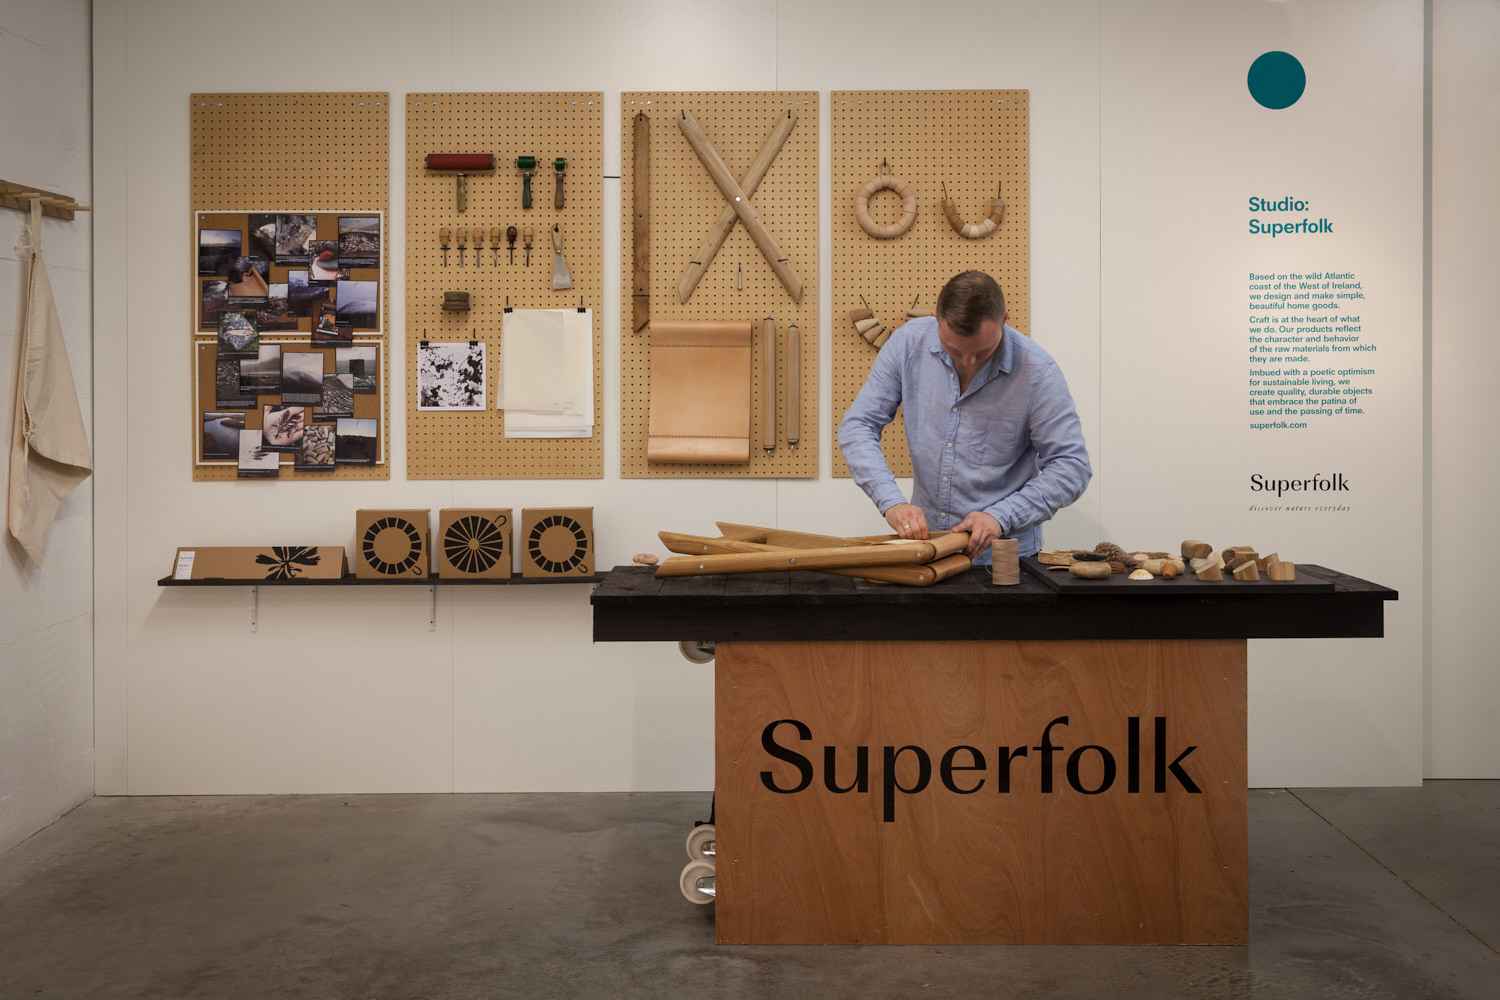 Ó_Gearoid Muldowney_Superfolk live studio_making_Superfolk Folding Stool_MP.jpg